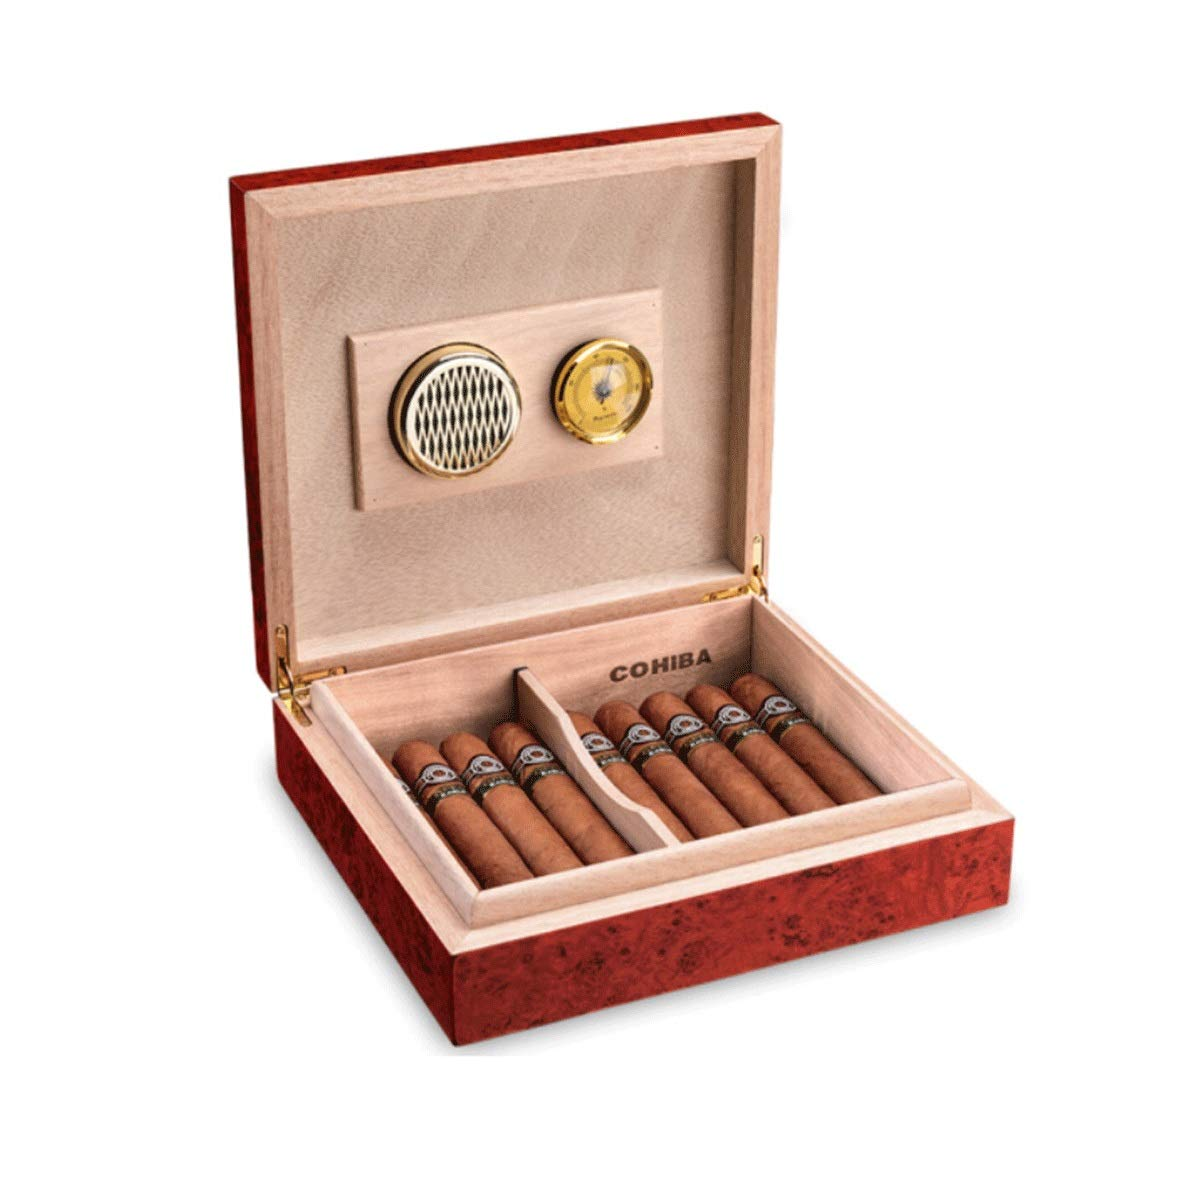 WENPINHUI Cigar Box, Desktop Cigar Hygrometer with Humidifier, Can Accommodate 20-25 Cigar (Color : A) by WENPINHUI